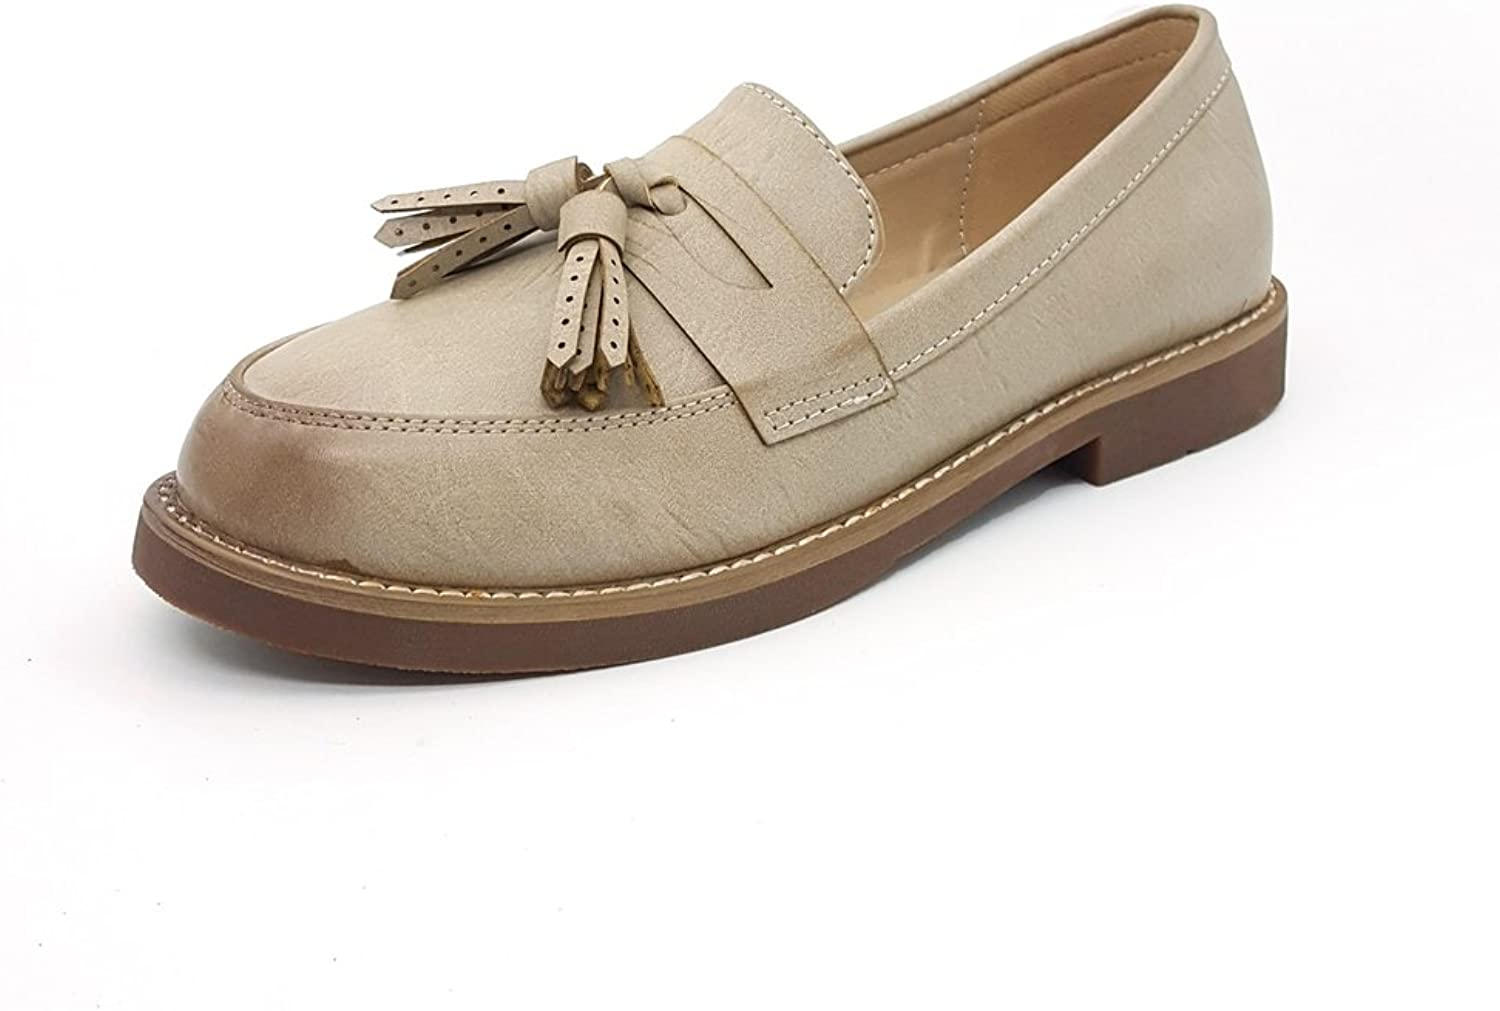 T-JULY Womens British Style Tassel Loafers Penny Casual Dress Pumps Soft Flat shoes